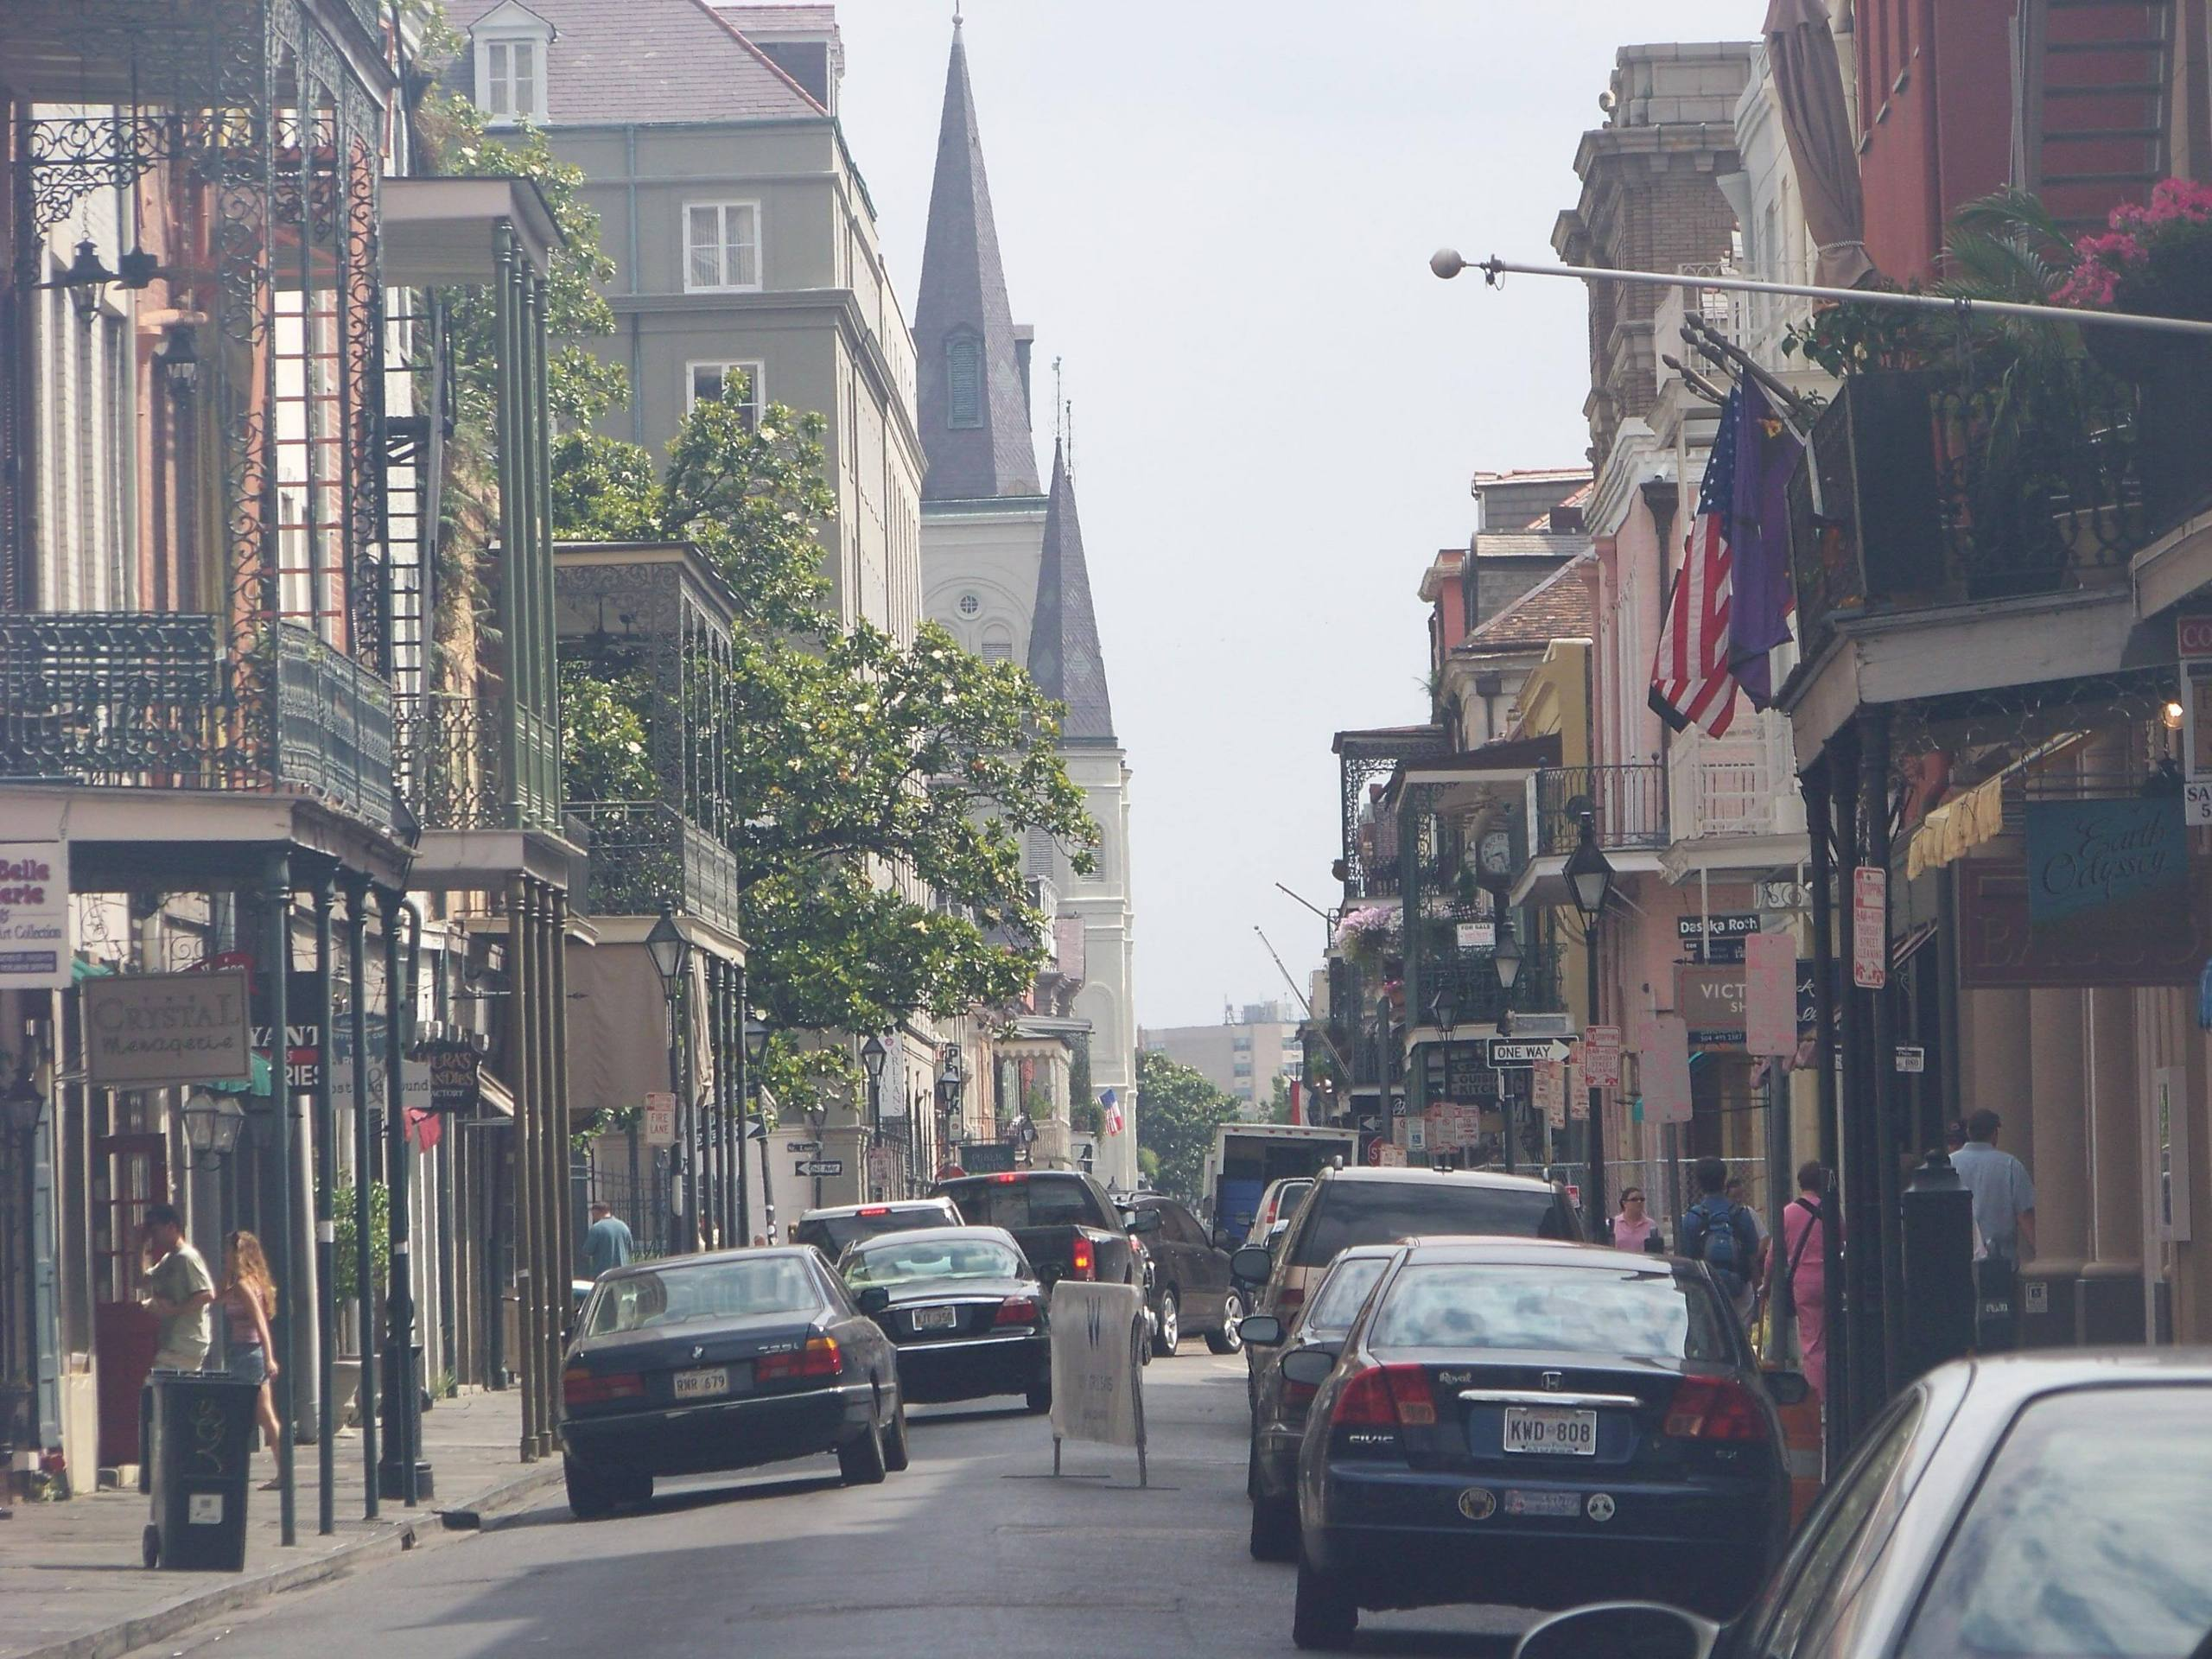 French Quarter   New Orleans Photo 21959168 2560x1920